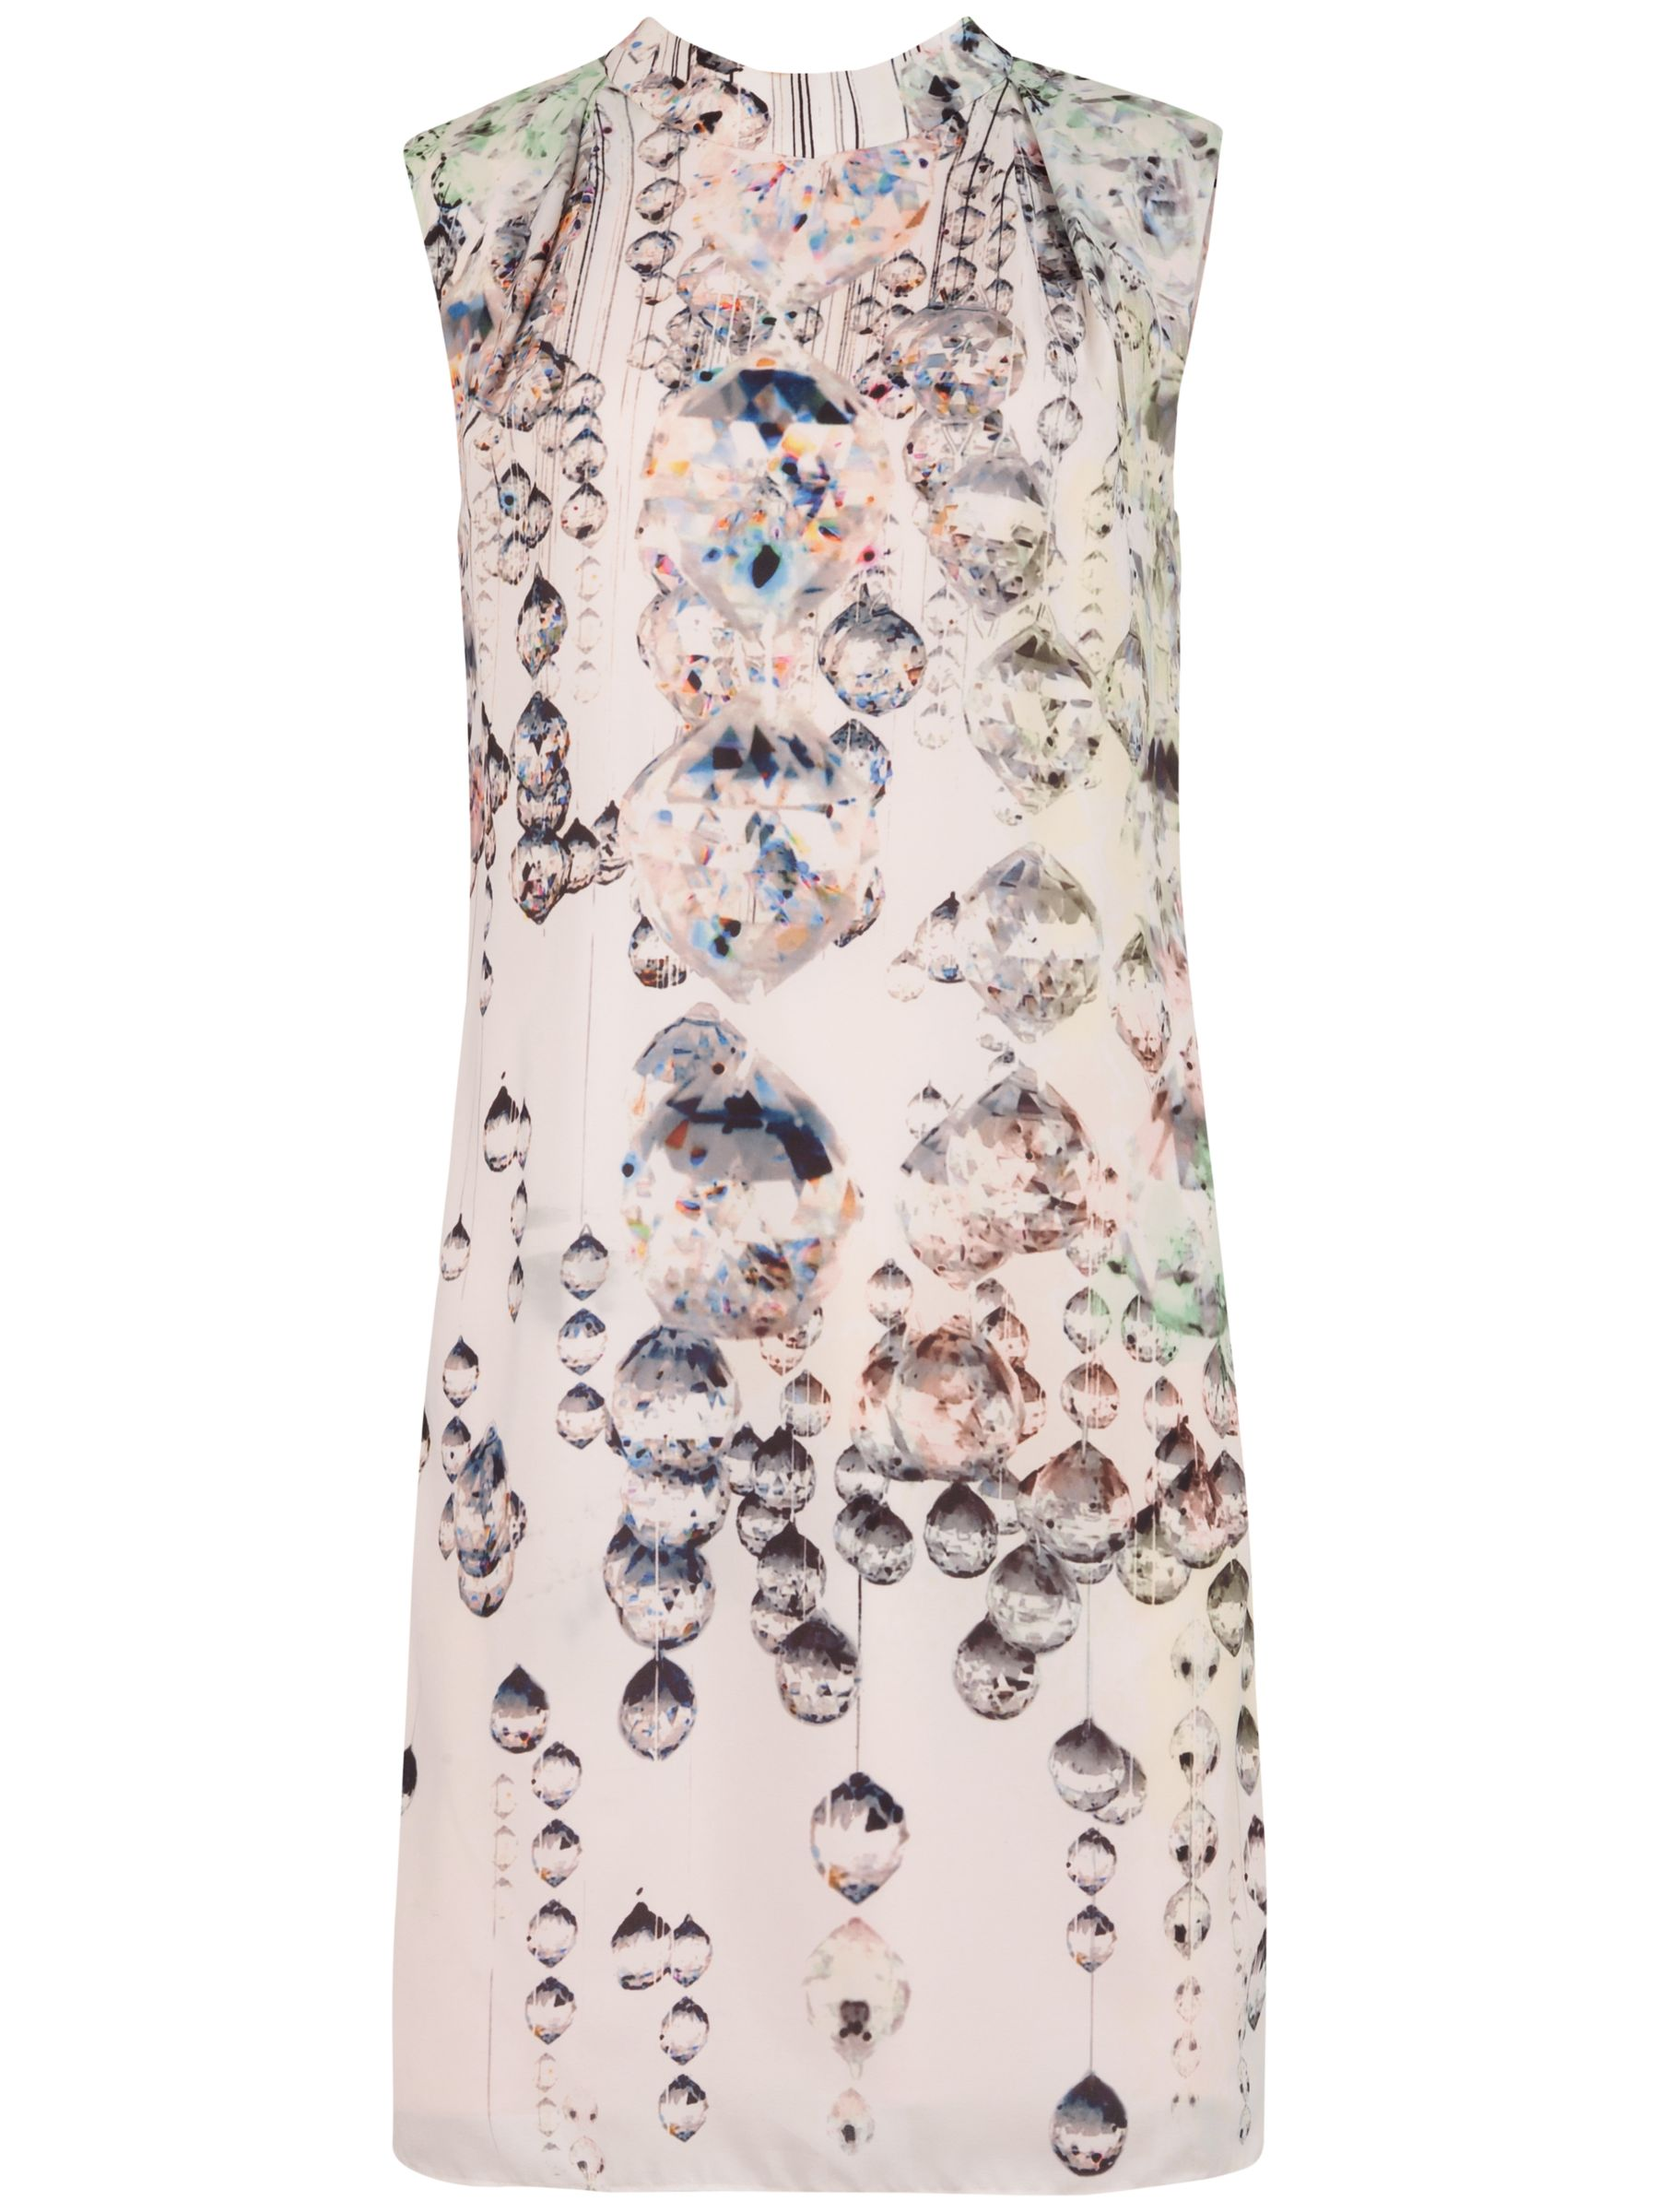 ted baker tilford crystal droplets print dress nude pink, ted, baker, tilford, crystal, droplets, print, dress, nude, pink, ted baker, 0|4|2|3|5|1, women, womens dresses, gifts, wedding, wedding clothing, female guests, fashion magazine, womenswear, men, brands l-z, 1879685